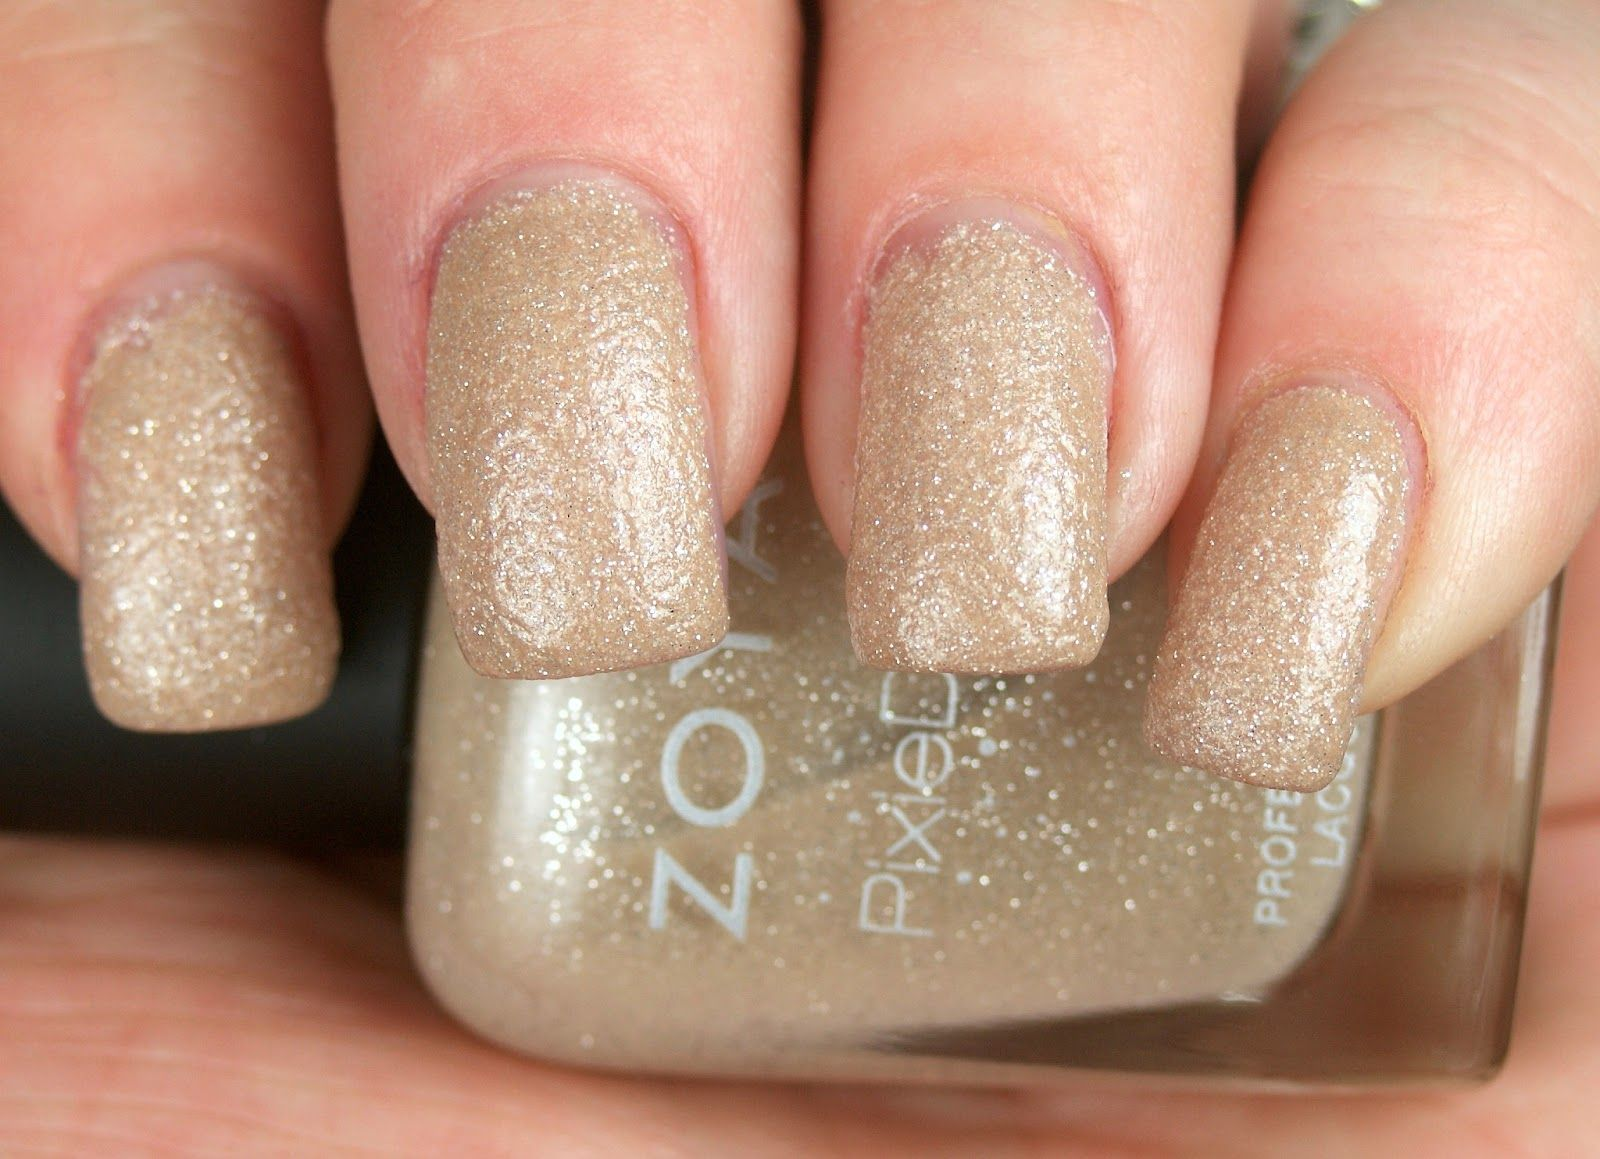 Zoya PixieDust Spring 2013 Collection Swatches & Review